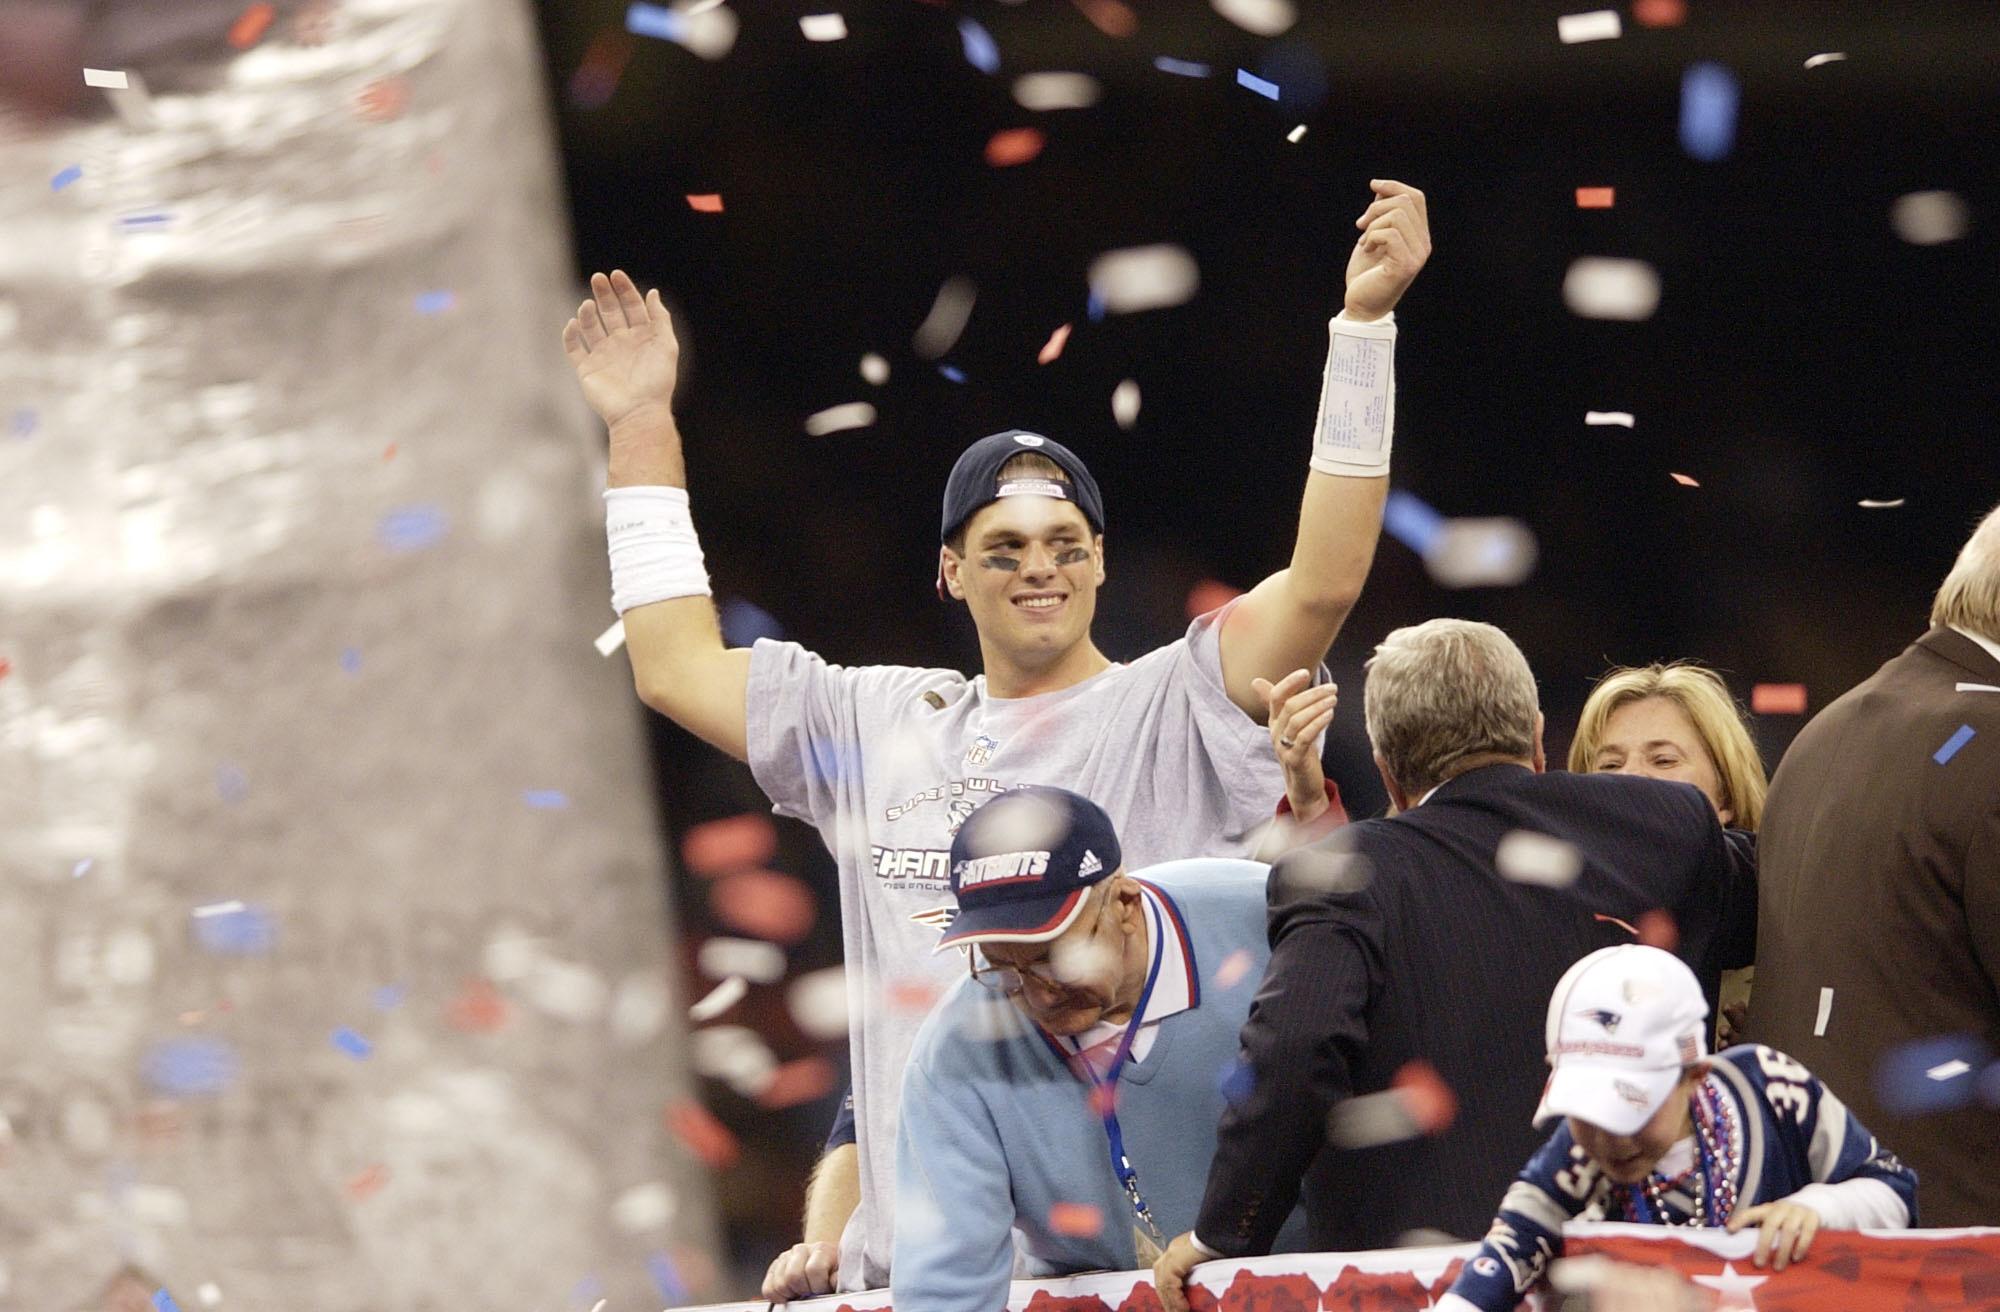 03 Feb 2002:   Quarterback Tom Brady celebrates after Superbowl XXXVI at the Superdome in New Orleans, Louisiana.  The Patriots won 20-17, with a 48-yard field goal by kicker Adam Vinatieri with 10 seconds left in the game . DIGITAL IMAGE. Mandatory Credi